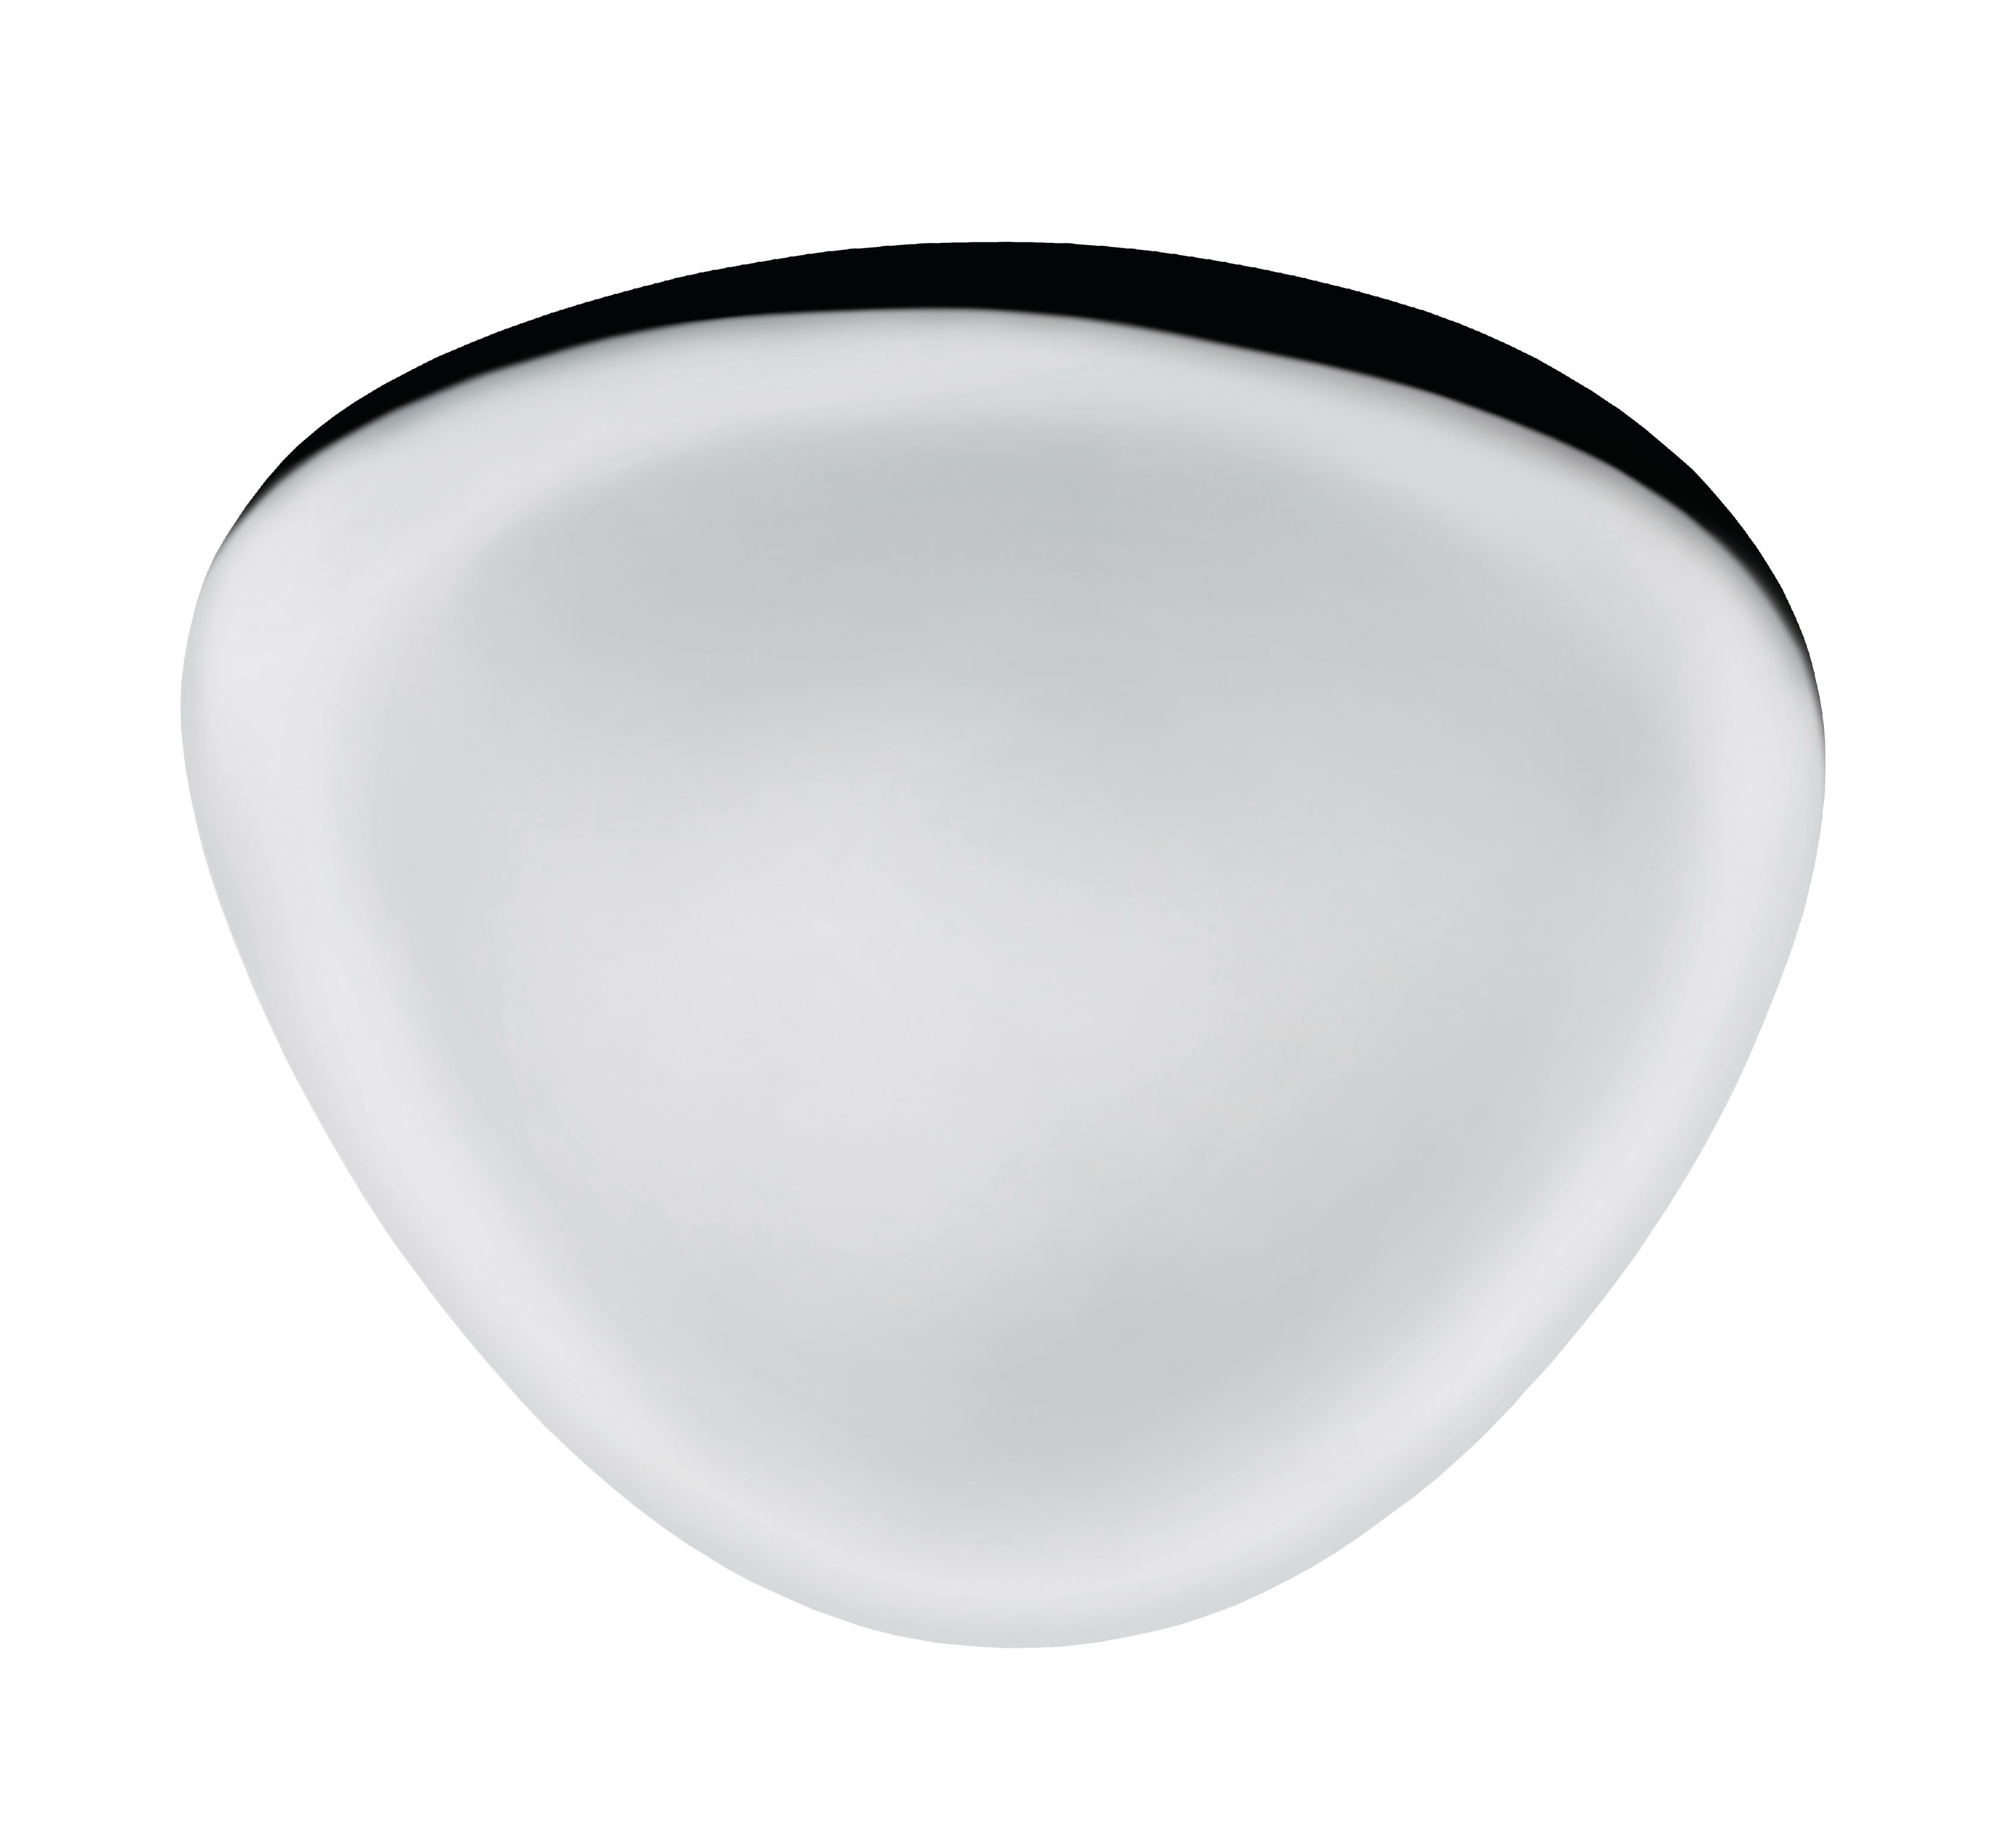 Tableware - Trays - Colombina Tray - / 40 x 34 cm by Alessi - Steel - Stainless steel 18/10